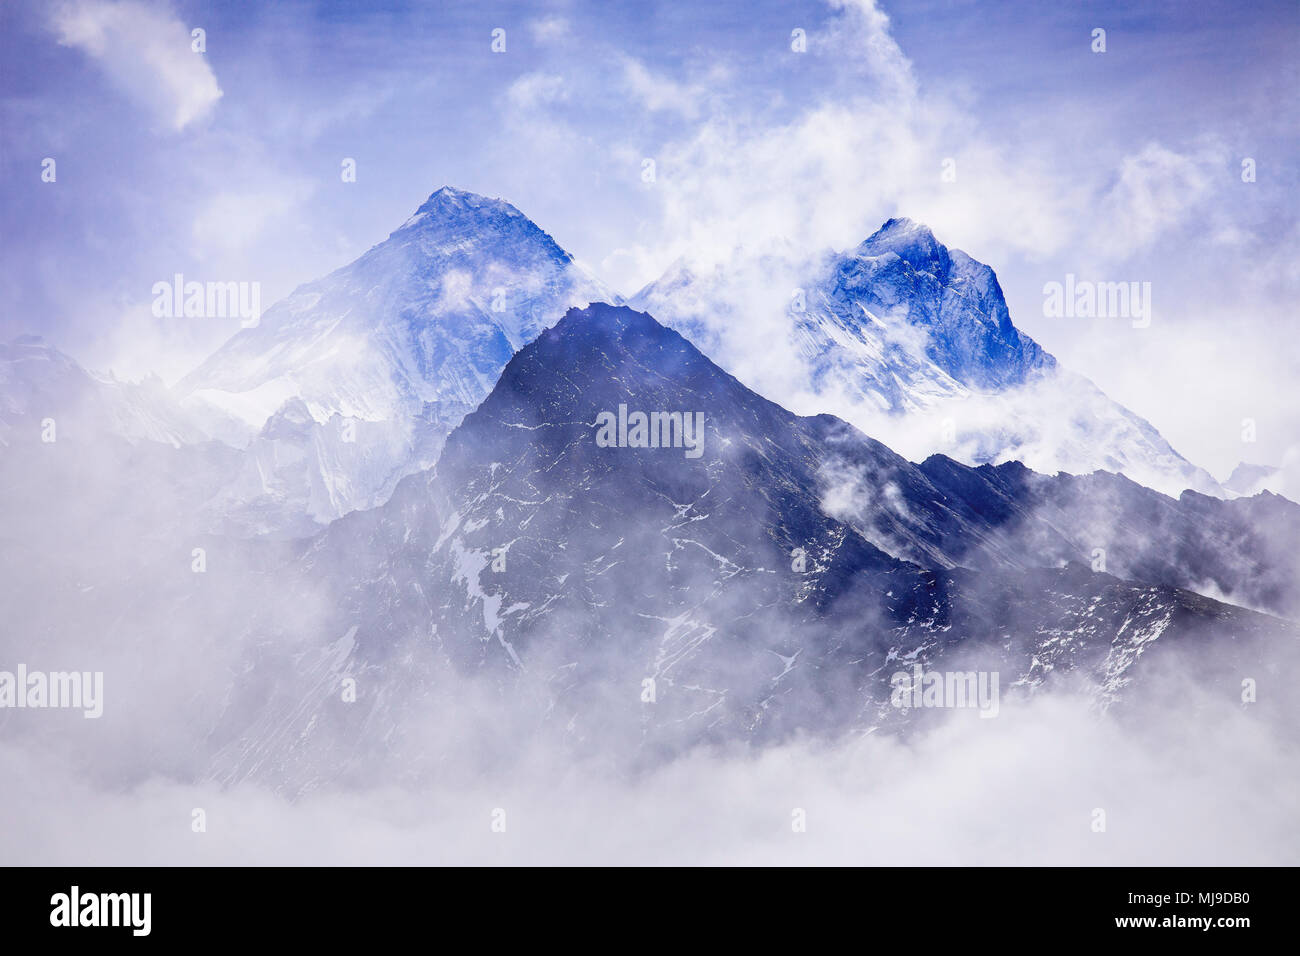 Mt. Everest and Nuptse through the clouds in Sagarmatha National Park, Nepal. - Stock Image